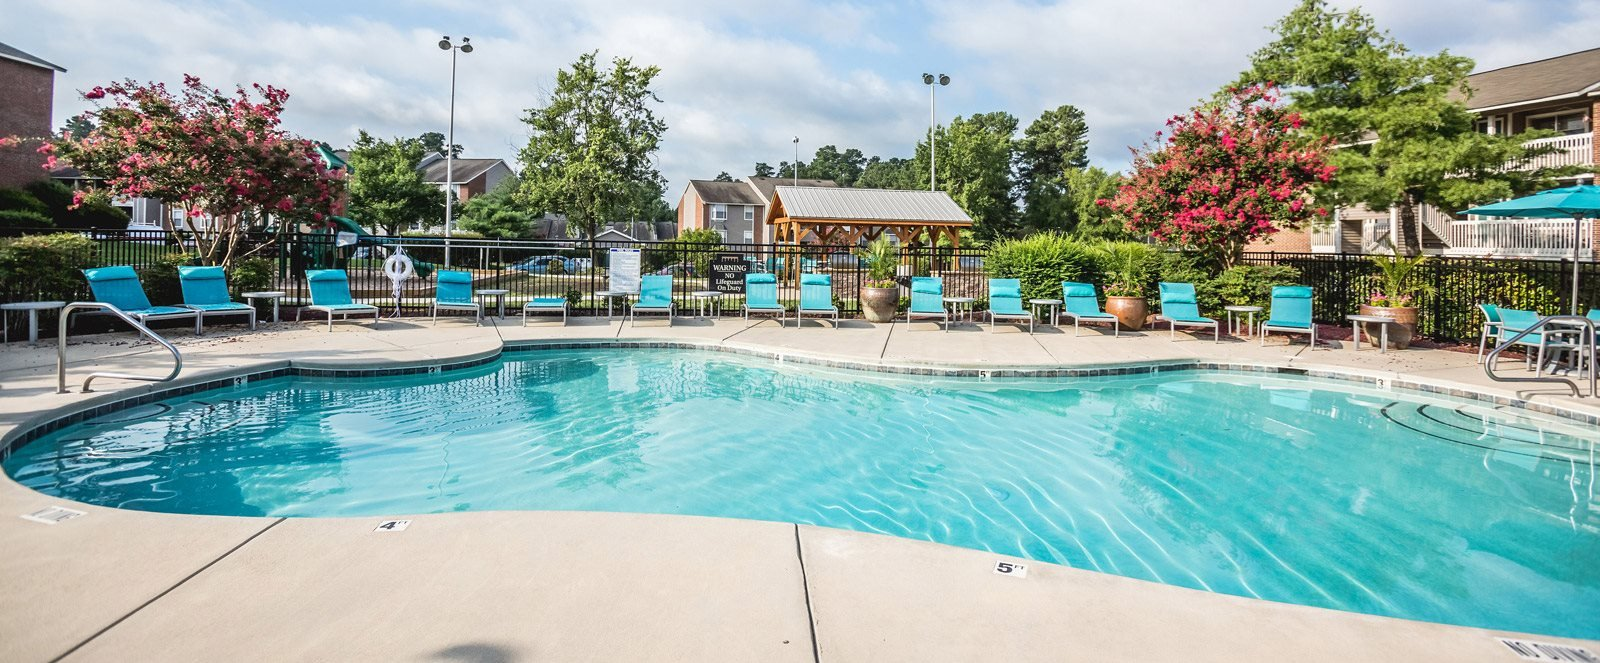 Pool at The Trestles Apartments in Raleigh NC